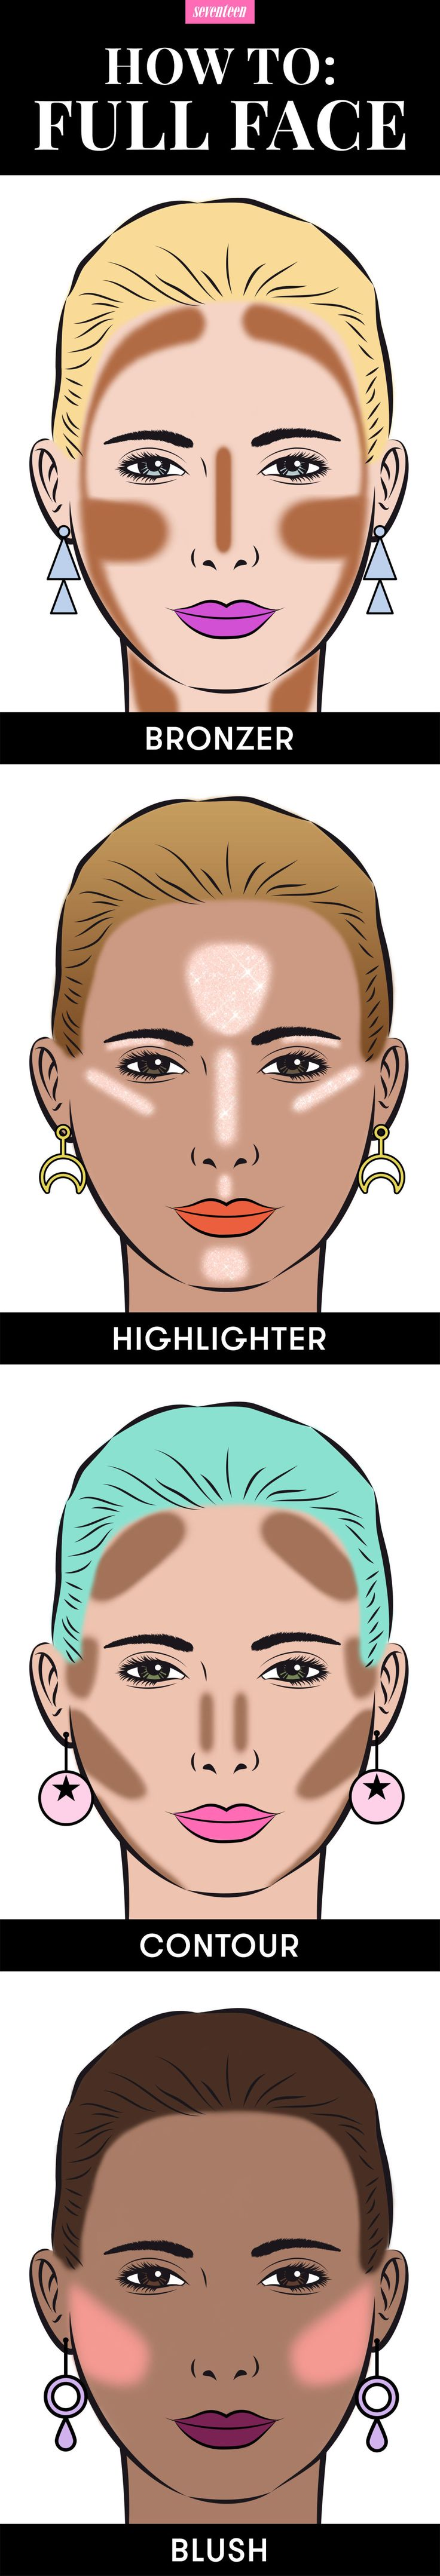 How to Contour Your Face Like Kylie Jenner Even If You've Never Contoured in You...